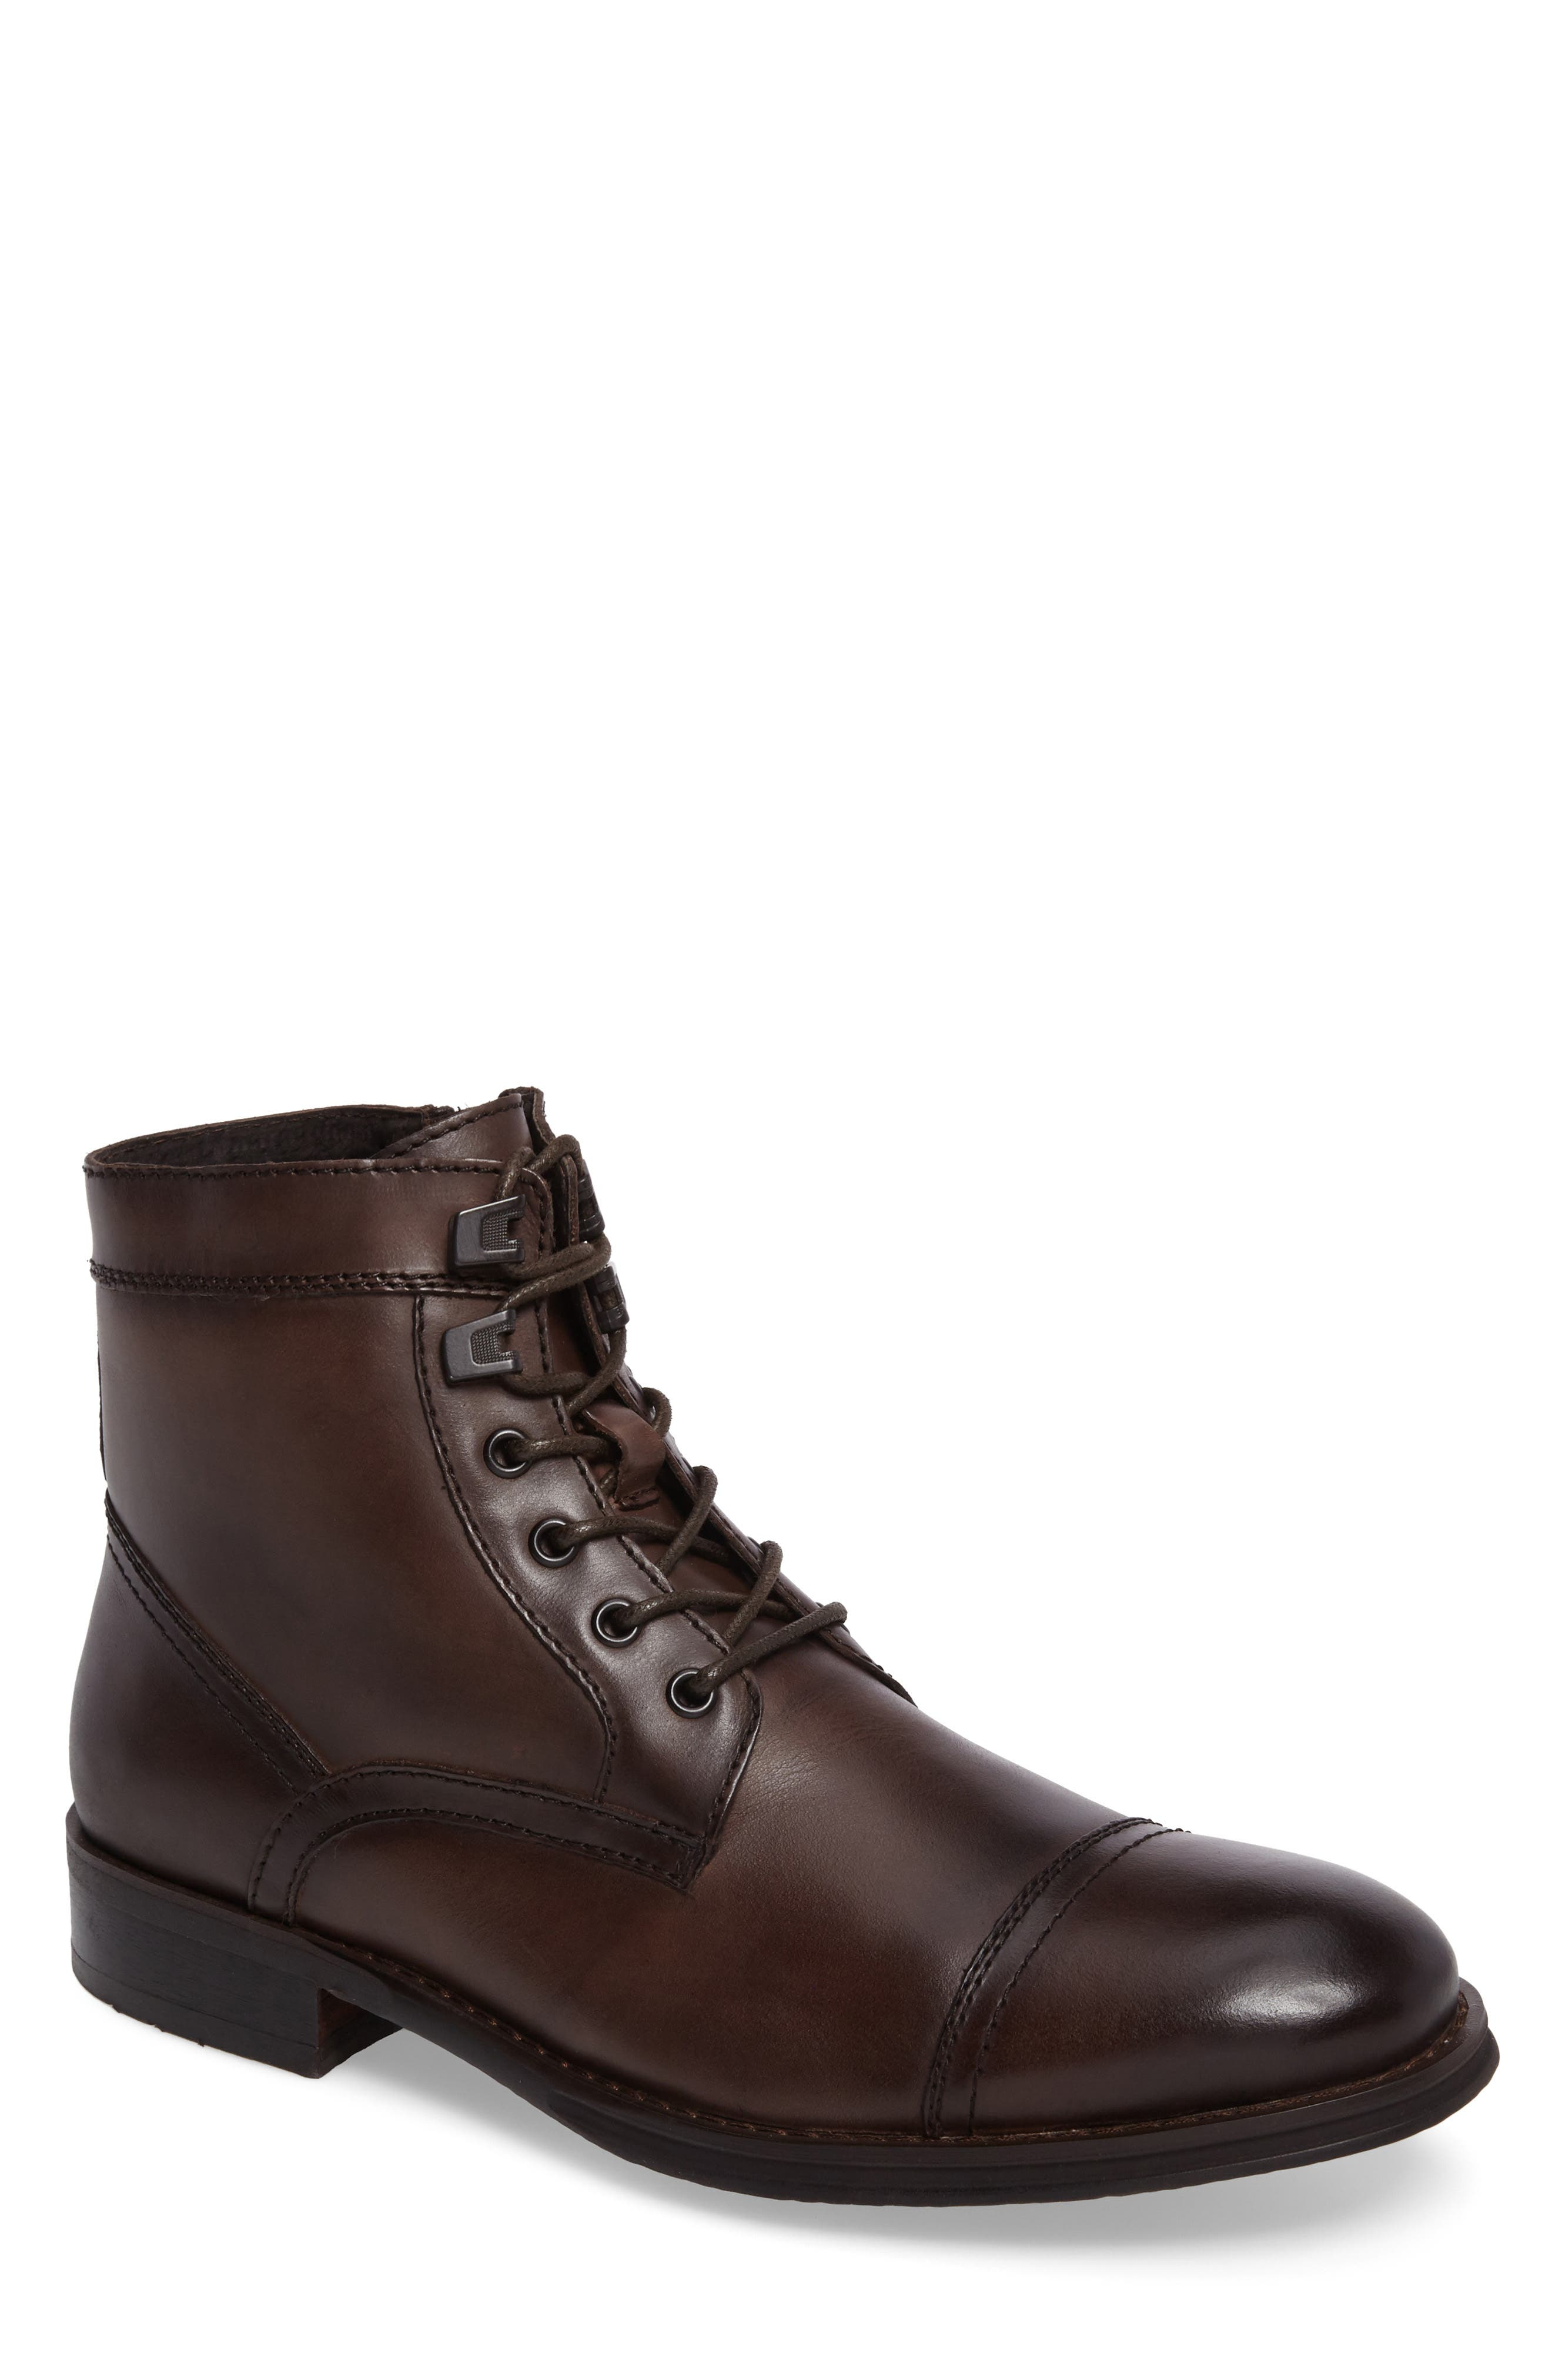 Alternate Image 1 Selected - Kenneth Cole New York Cap Toe Boot (Men)